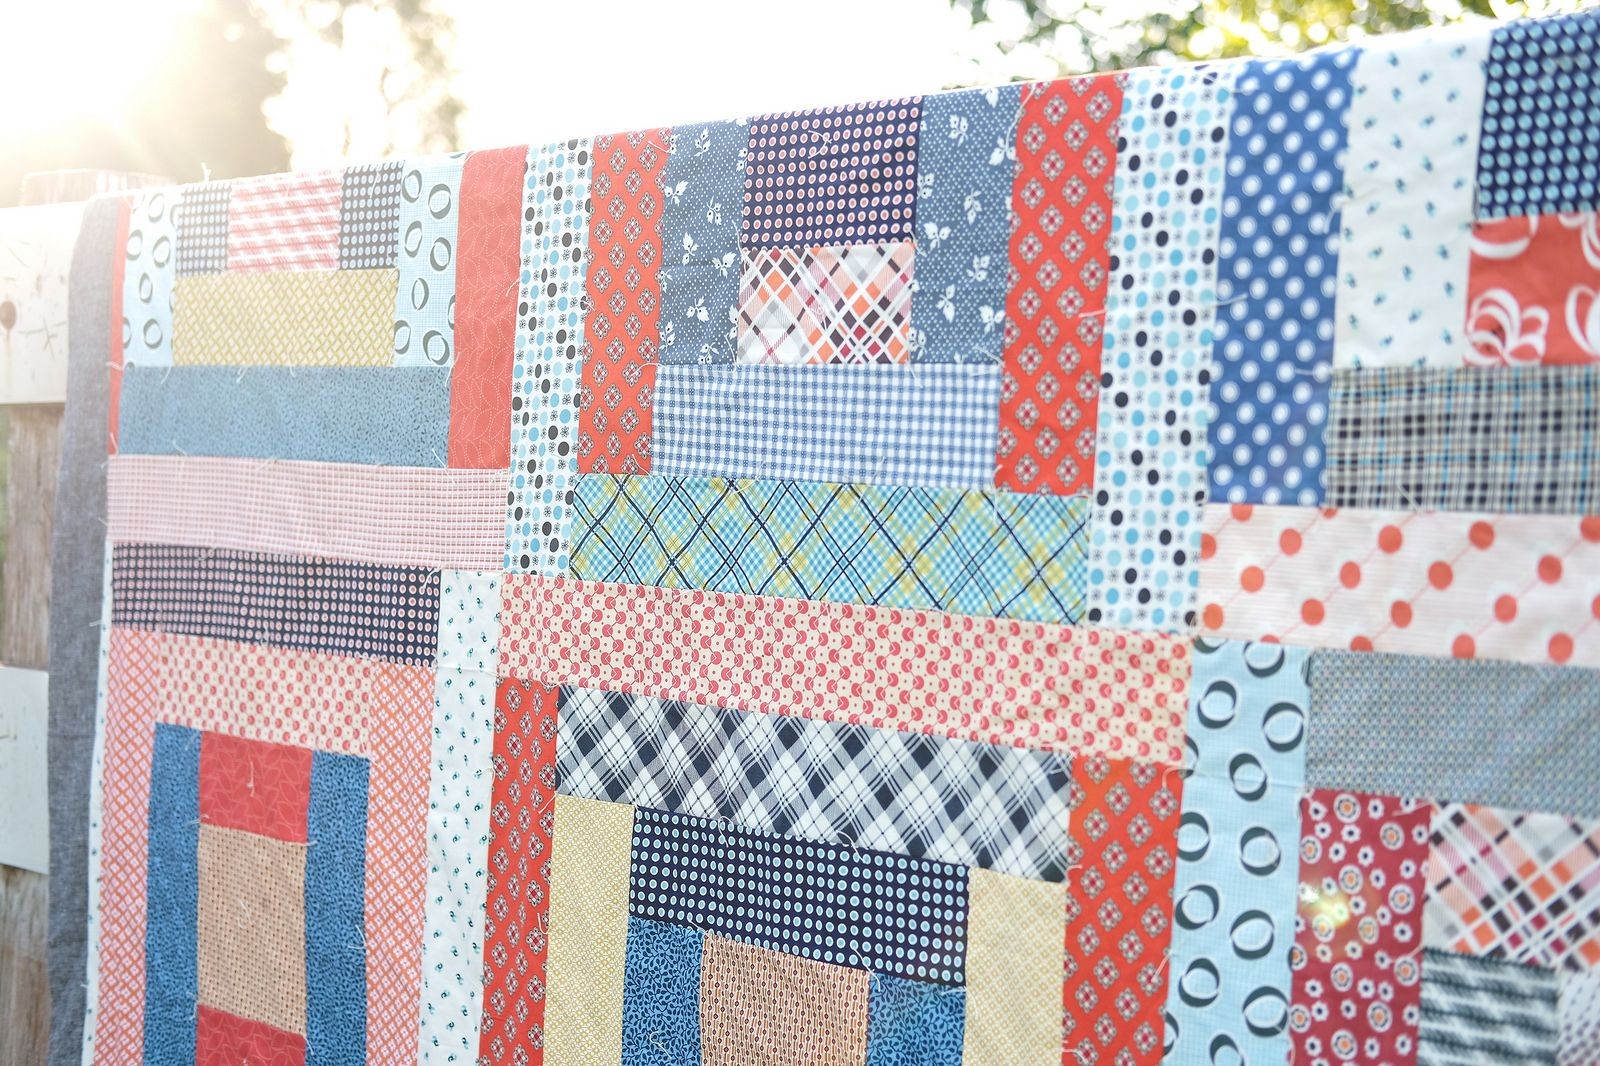 May Giant Block Picnic Quilt (with picnic quilt tips) is part of Picnic quilt, Barn quilts for sale, Big block quilts, Table quilts, Quilts, Easy quilts - Binding Essex Linen in Black Fabrics Various Denyse Schmidt Batting Queen size flannel flat sheet (I got mine on eBay!)